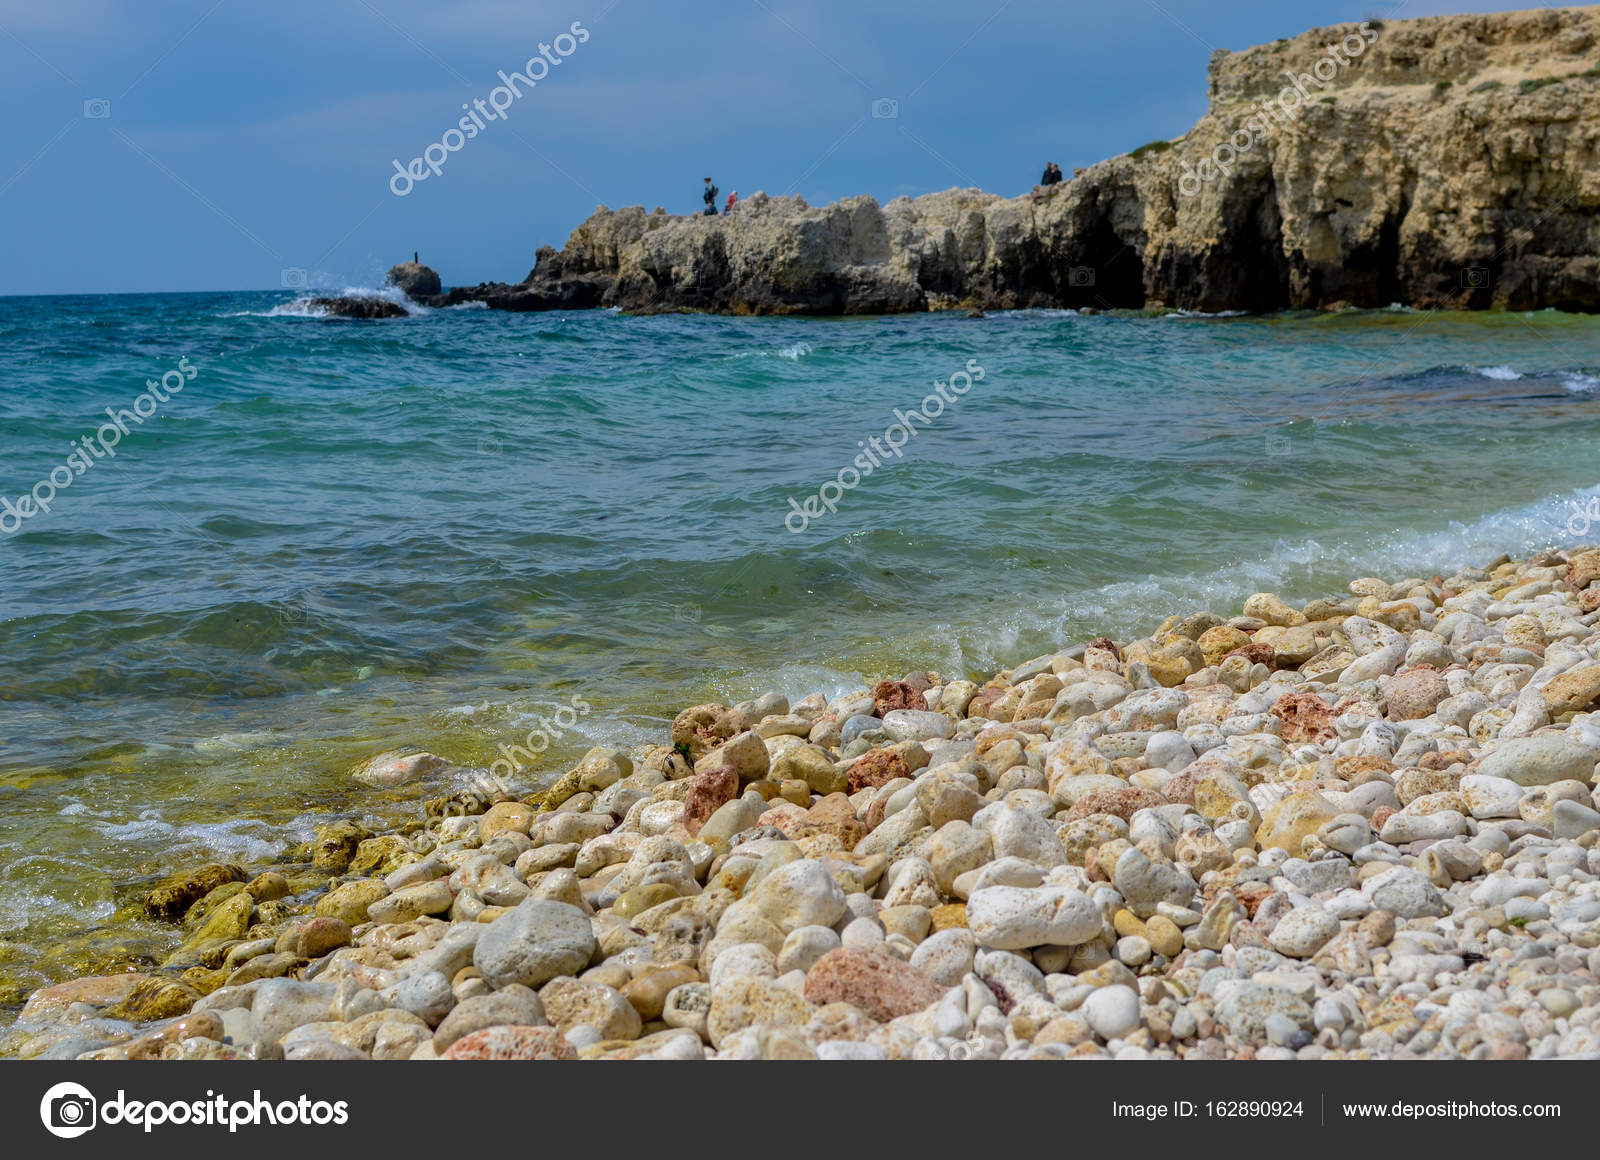 Pebble Beach Of The Black Sea In The Suburbs Of The City Of